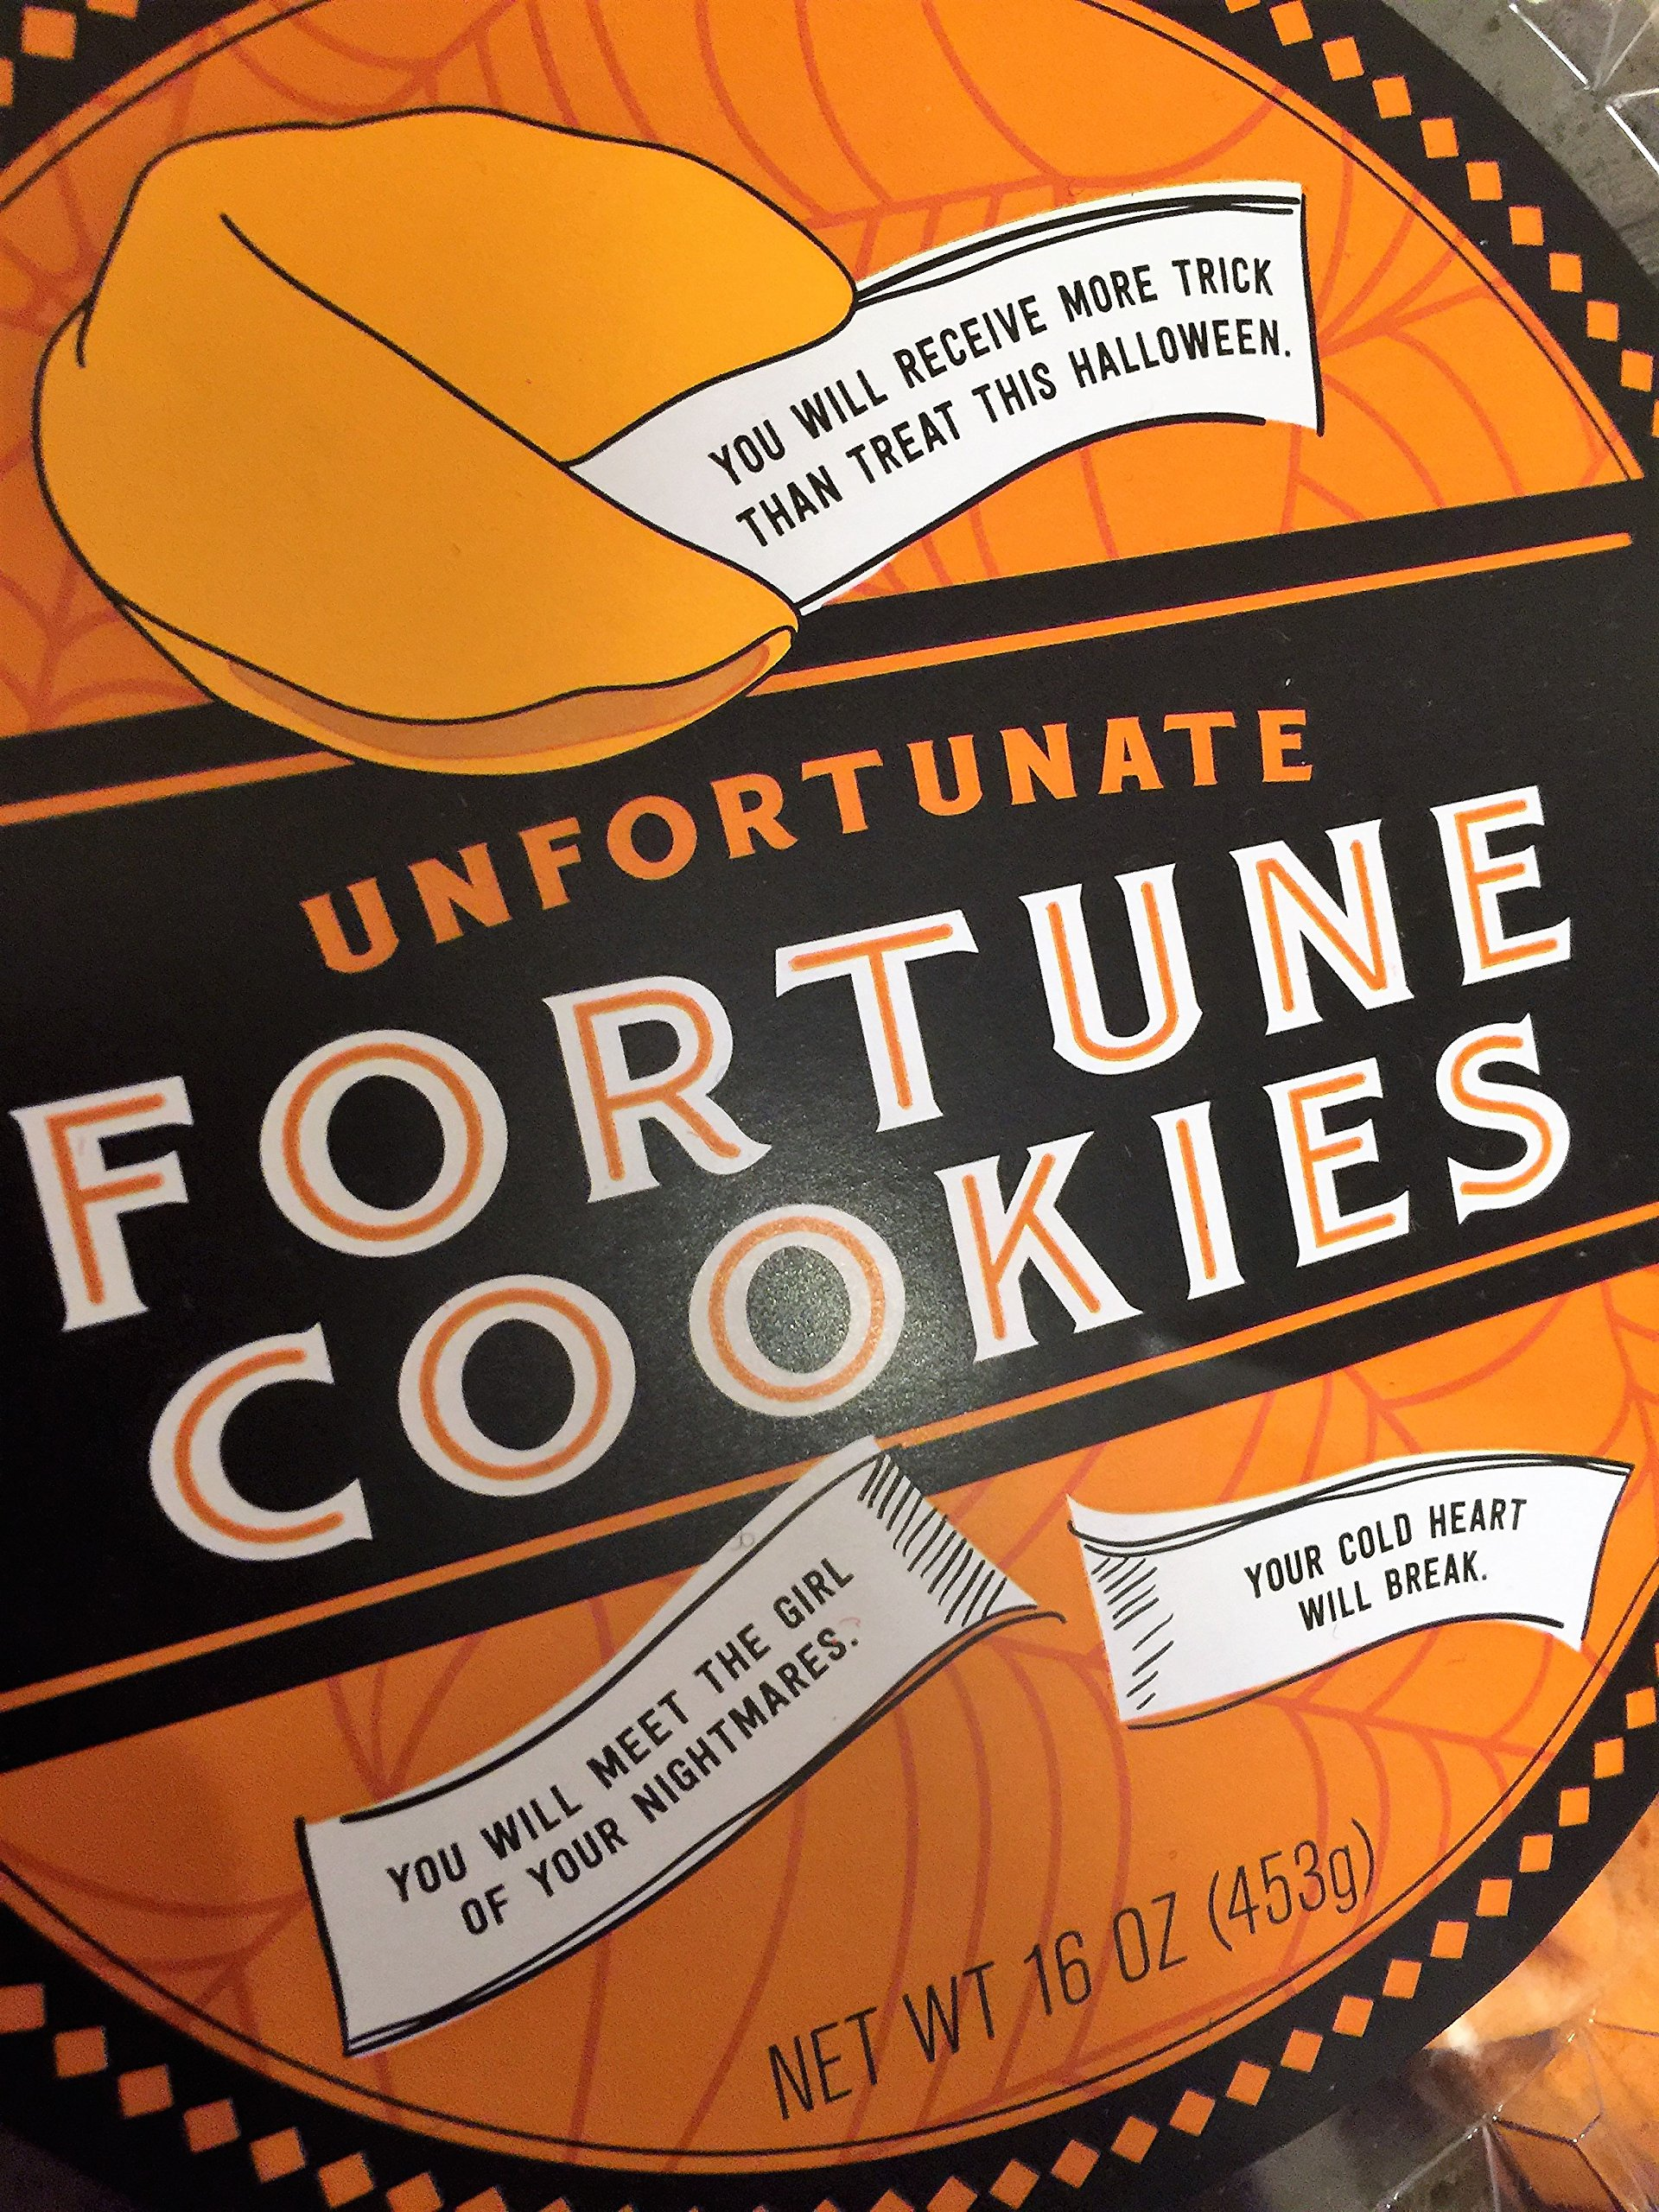 Halloween Unfortunate Fortune Cookies Pack of 50 in Orange and Black with Creepy Unfortunate Messages Inside by World Market